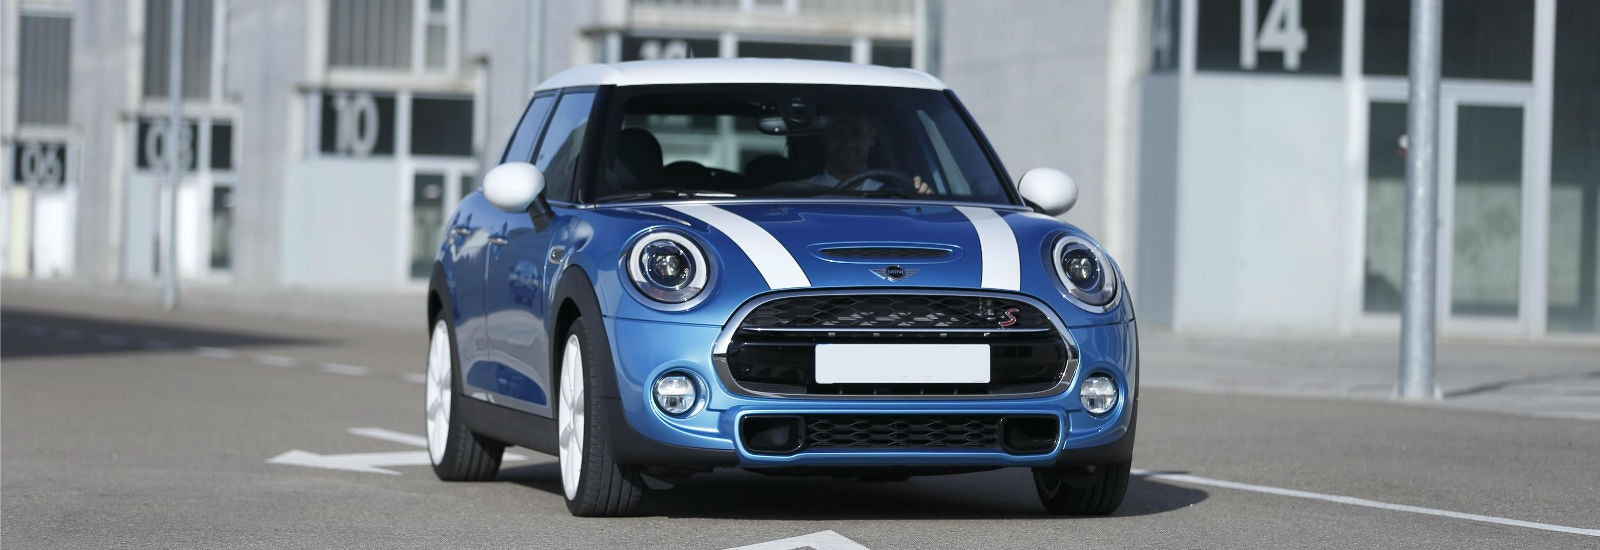 Blue Mini Hatchback with white stripes parked, viewed from the front